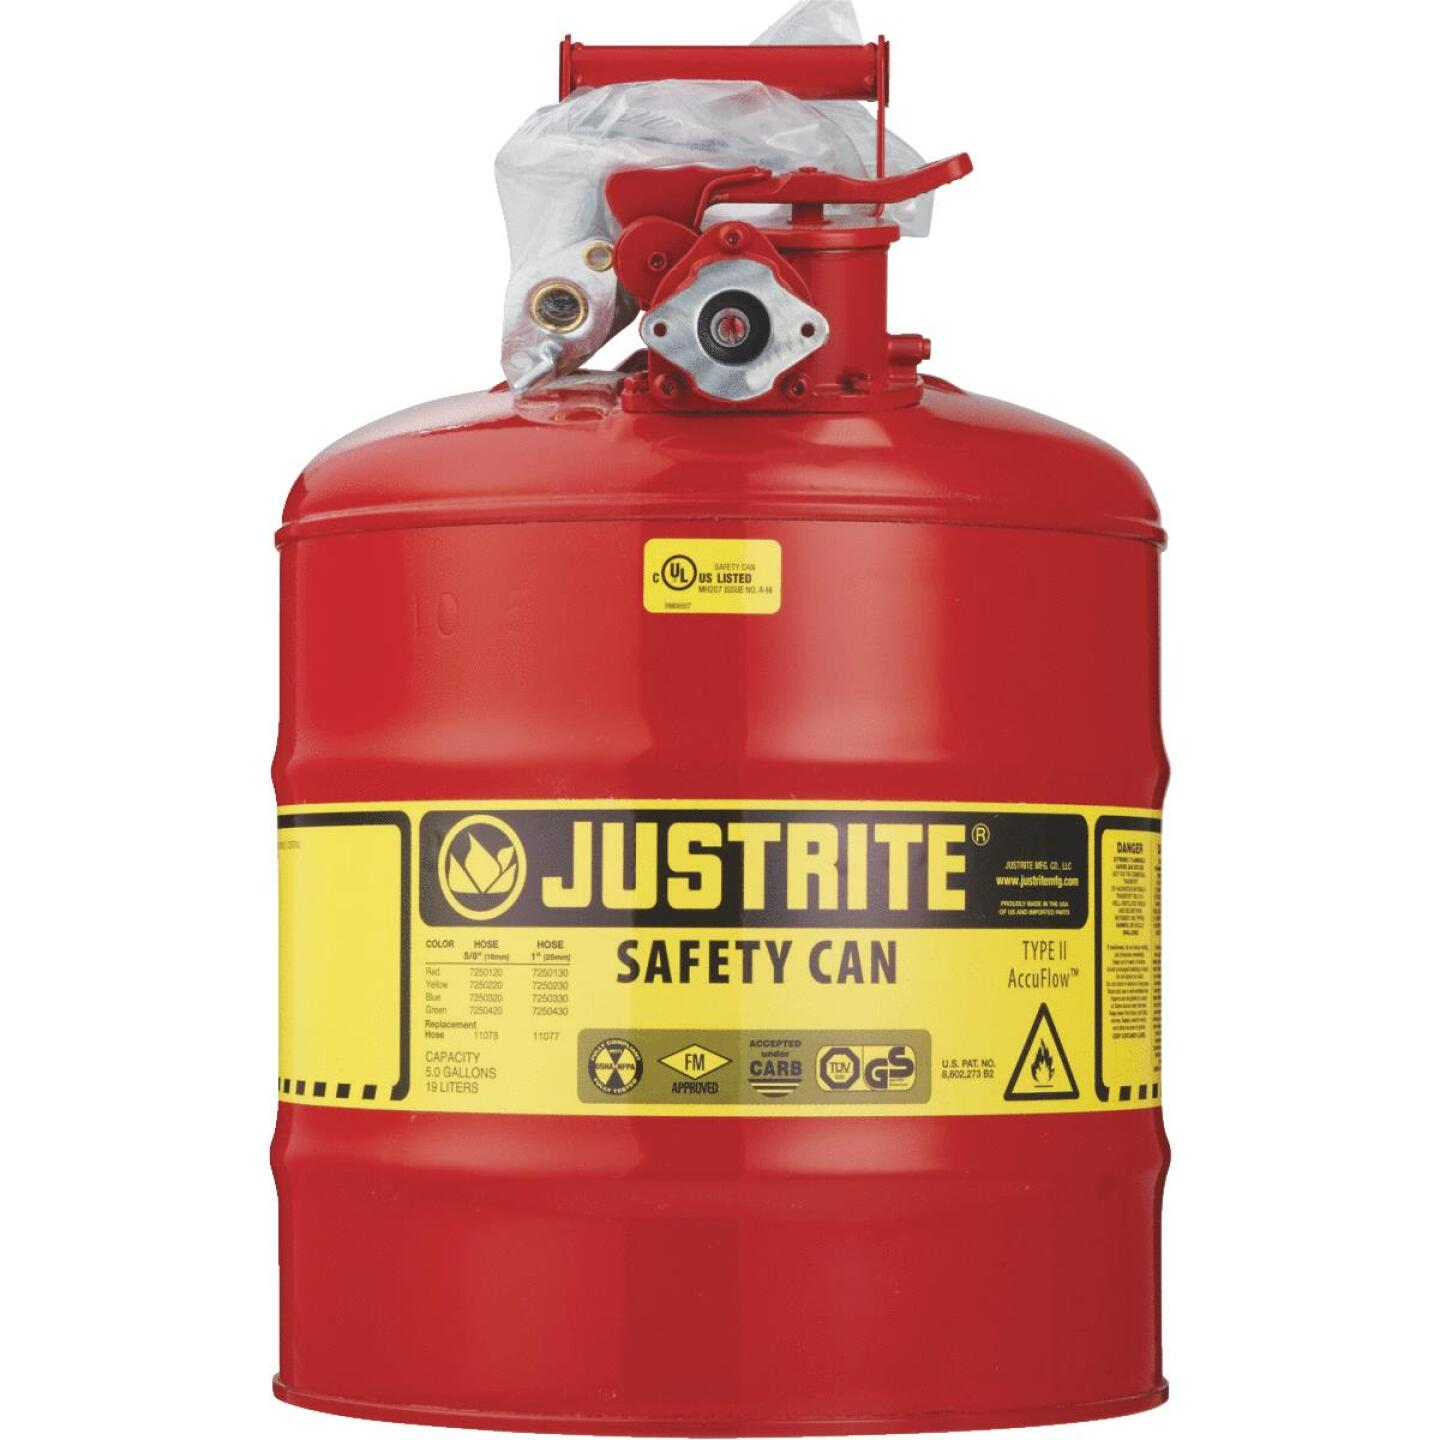 Justrite 5 Gal. Type II Galvanized Steel Safety Fuel Can, Red Image 2